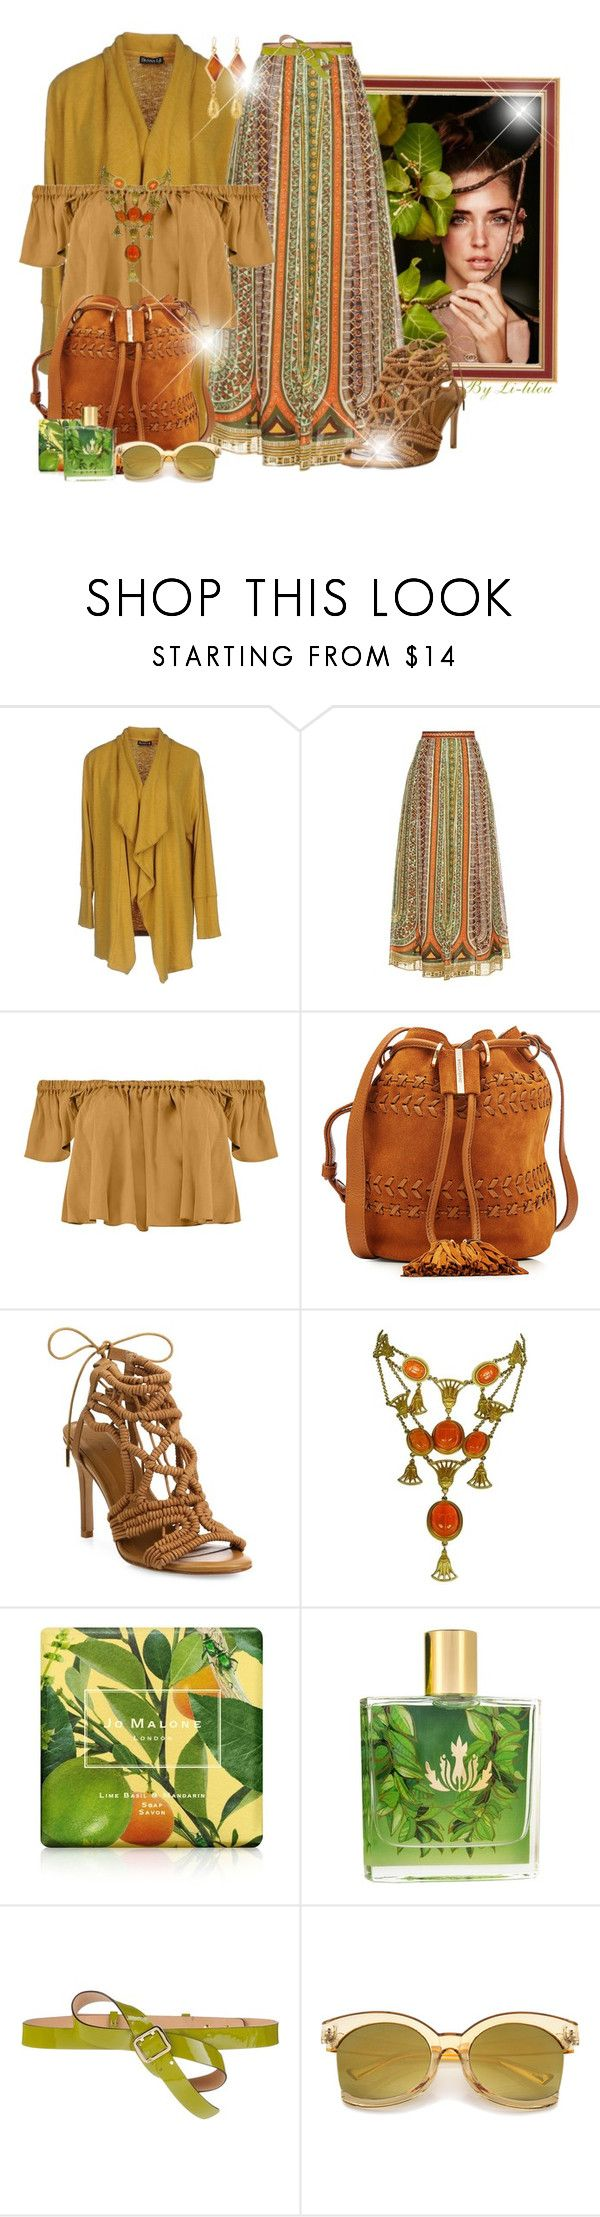 """~Camel & Green~"" by li-lilou ❤ liked on Polyvore featuring Valentino, Boohoo, See by Chloé, Joie, Christian Dior, Jo Malone, Malie Organics, Dsquared2 and Devon Leigh"